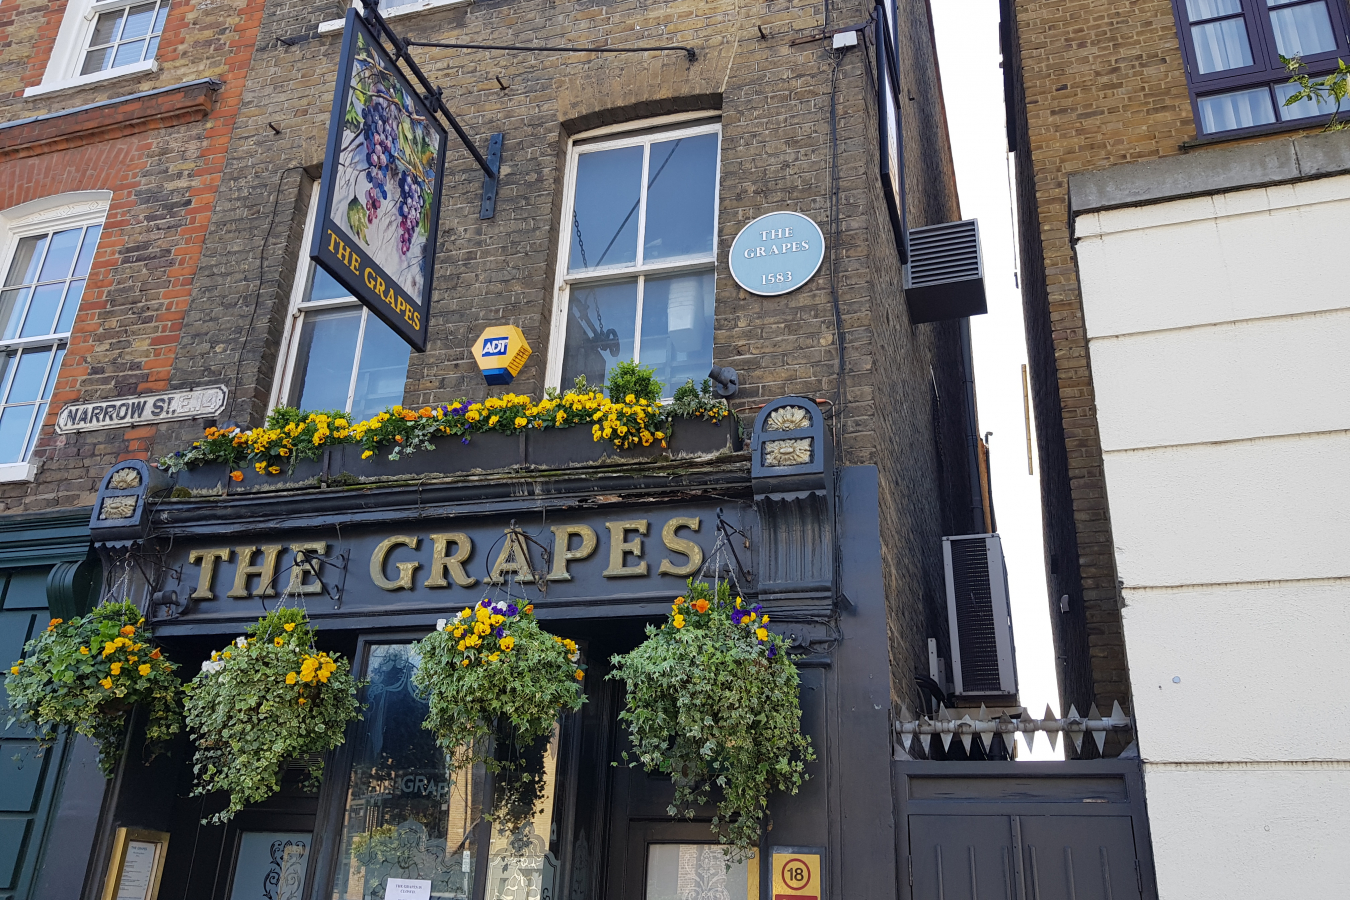 The Grapes, Limehouse, London currently closed due to coronavirus